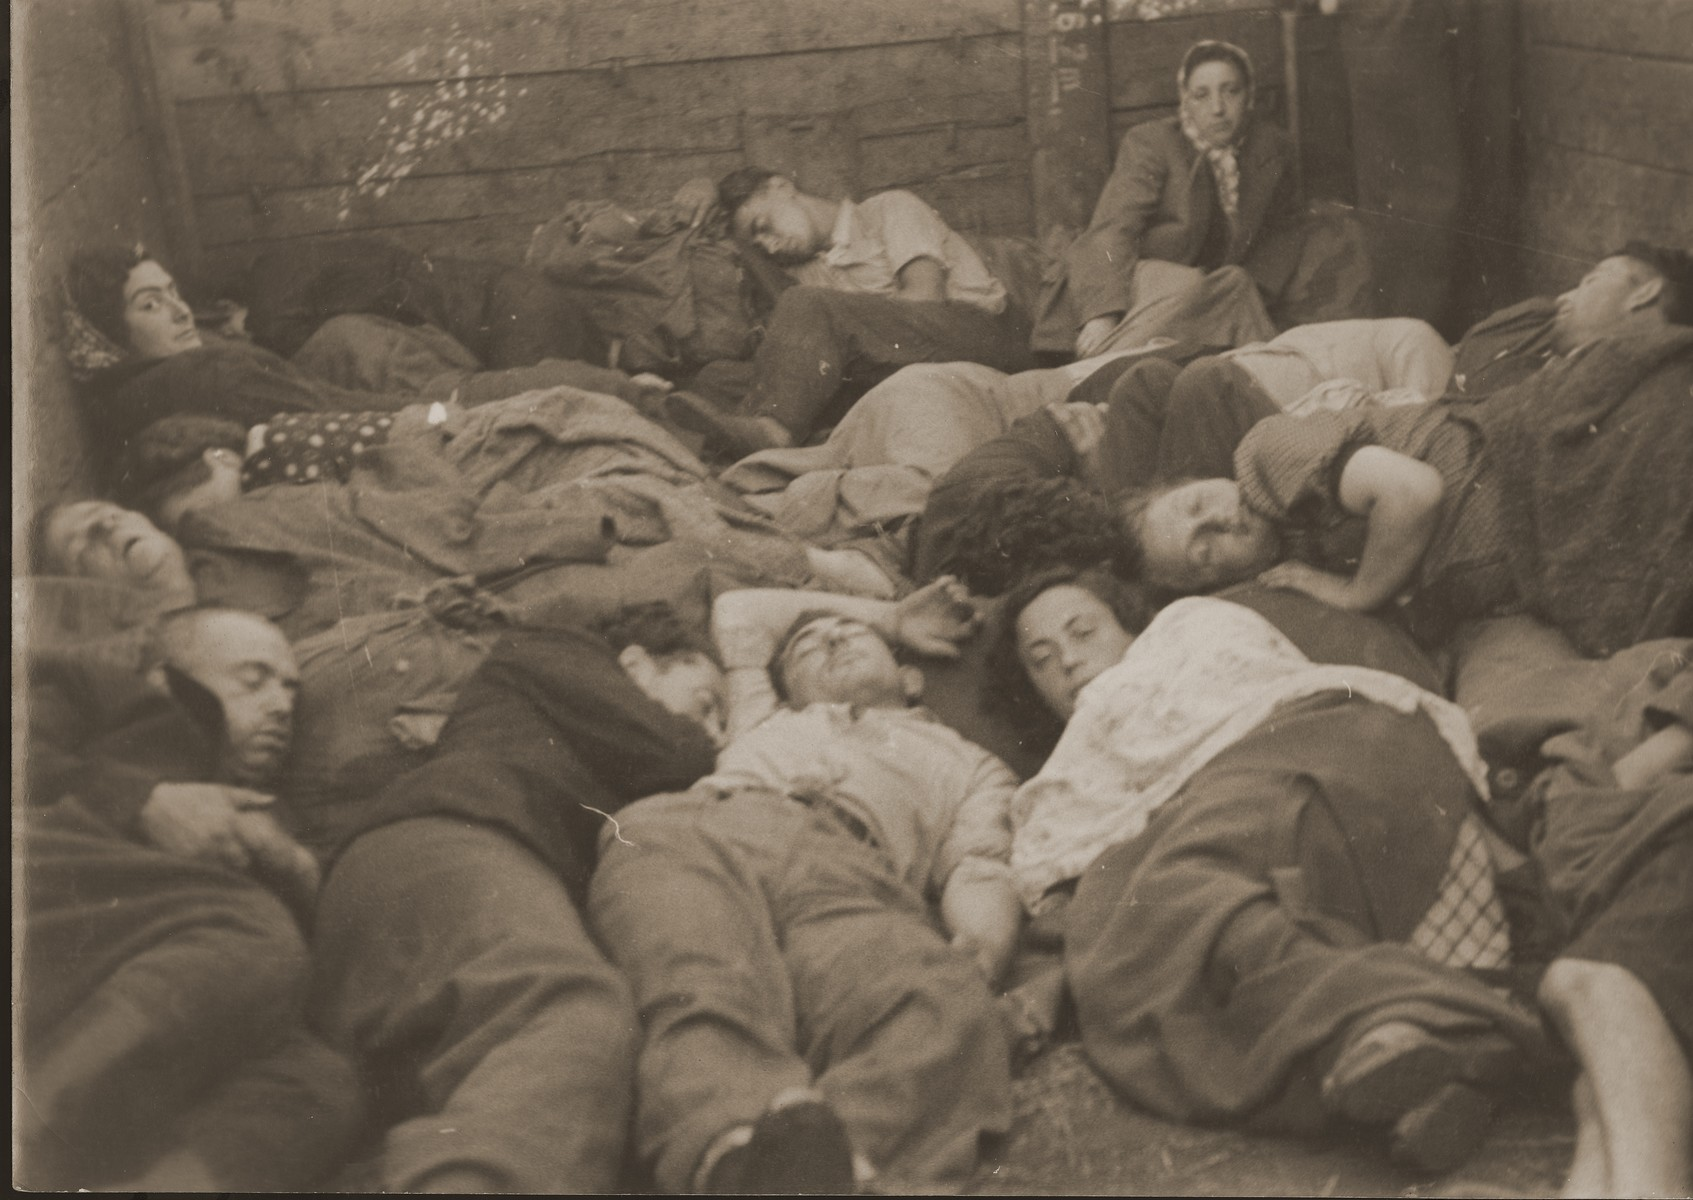 Jewish DPs who have fled from Poland, sleep in the box car of a train while on their way to the west.  [Oversized print]